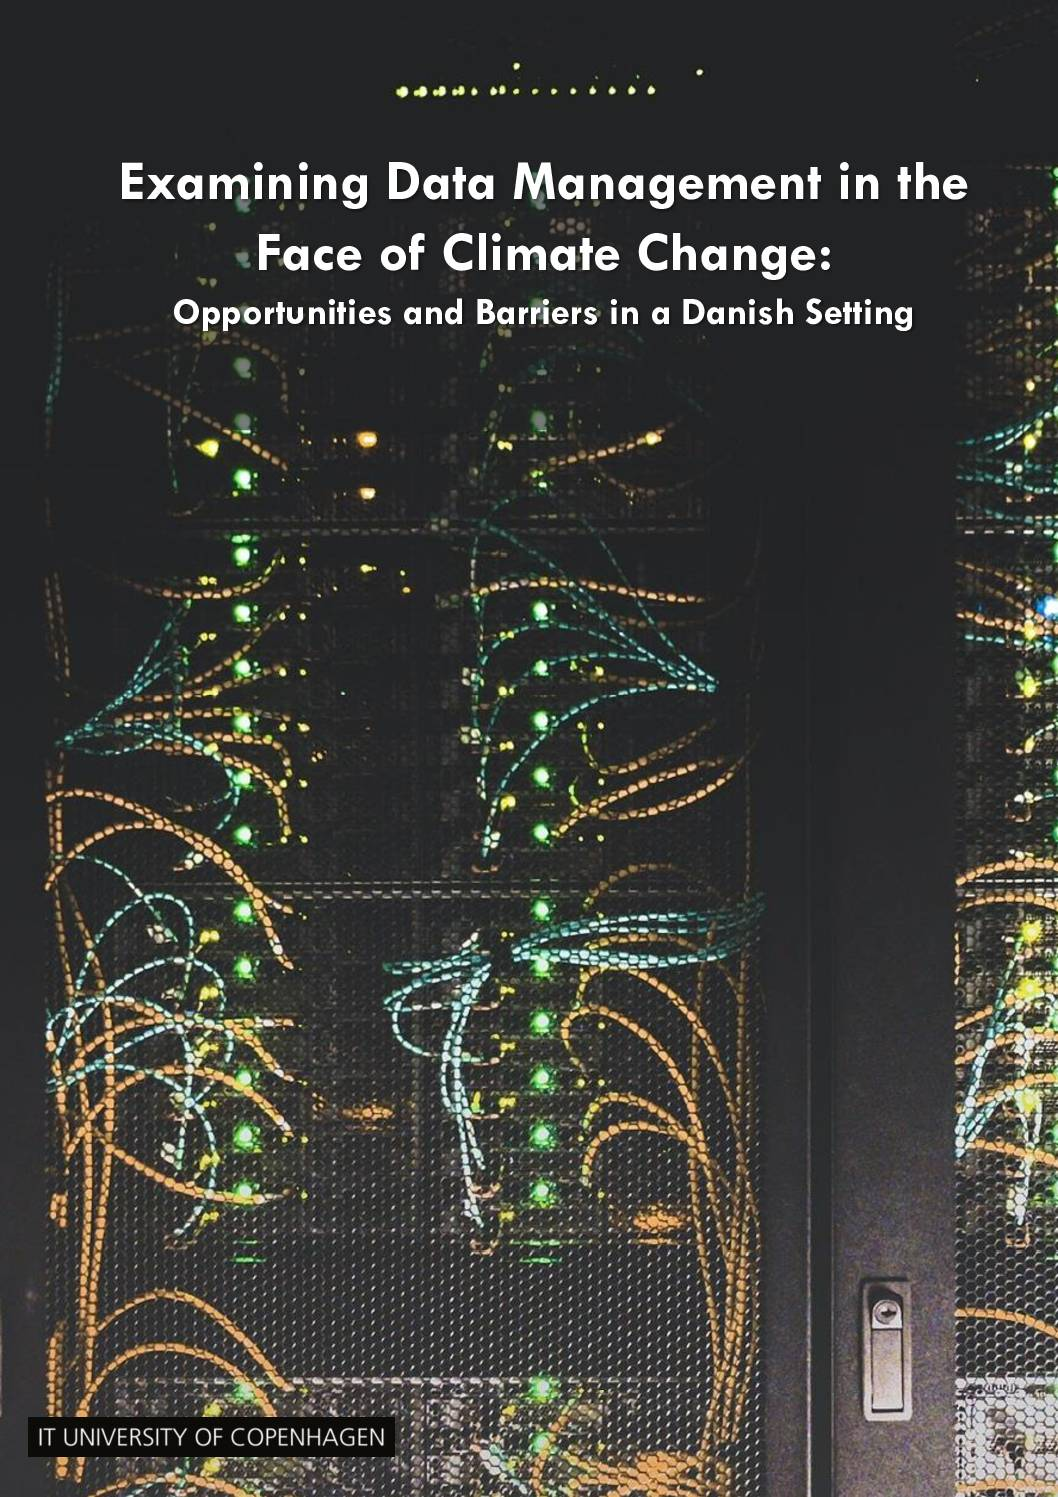 Examining Data Management in the Face of Climate Change